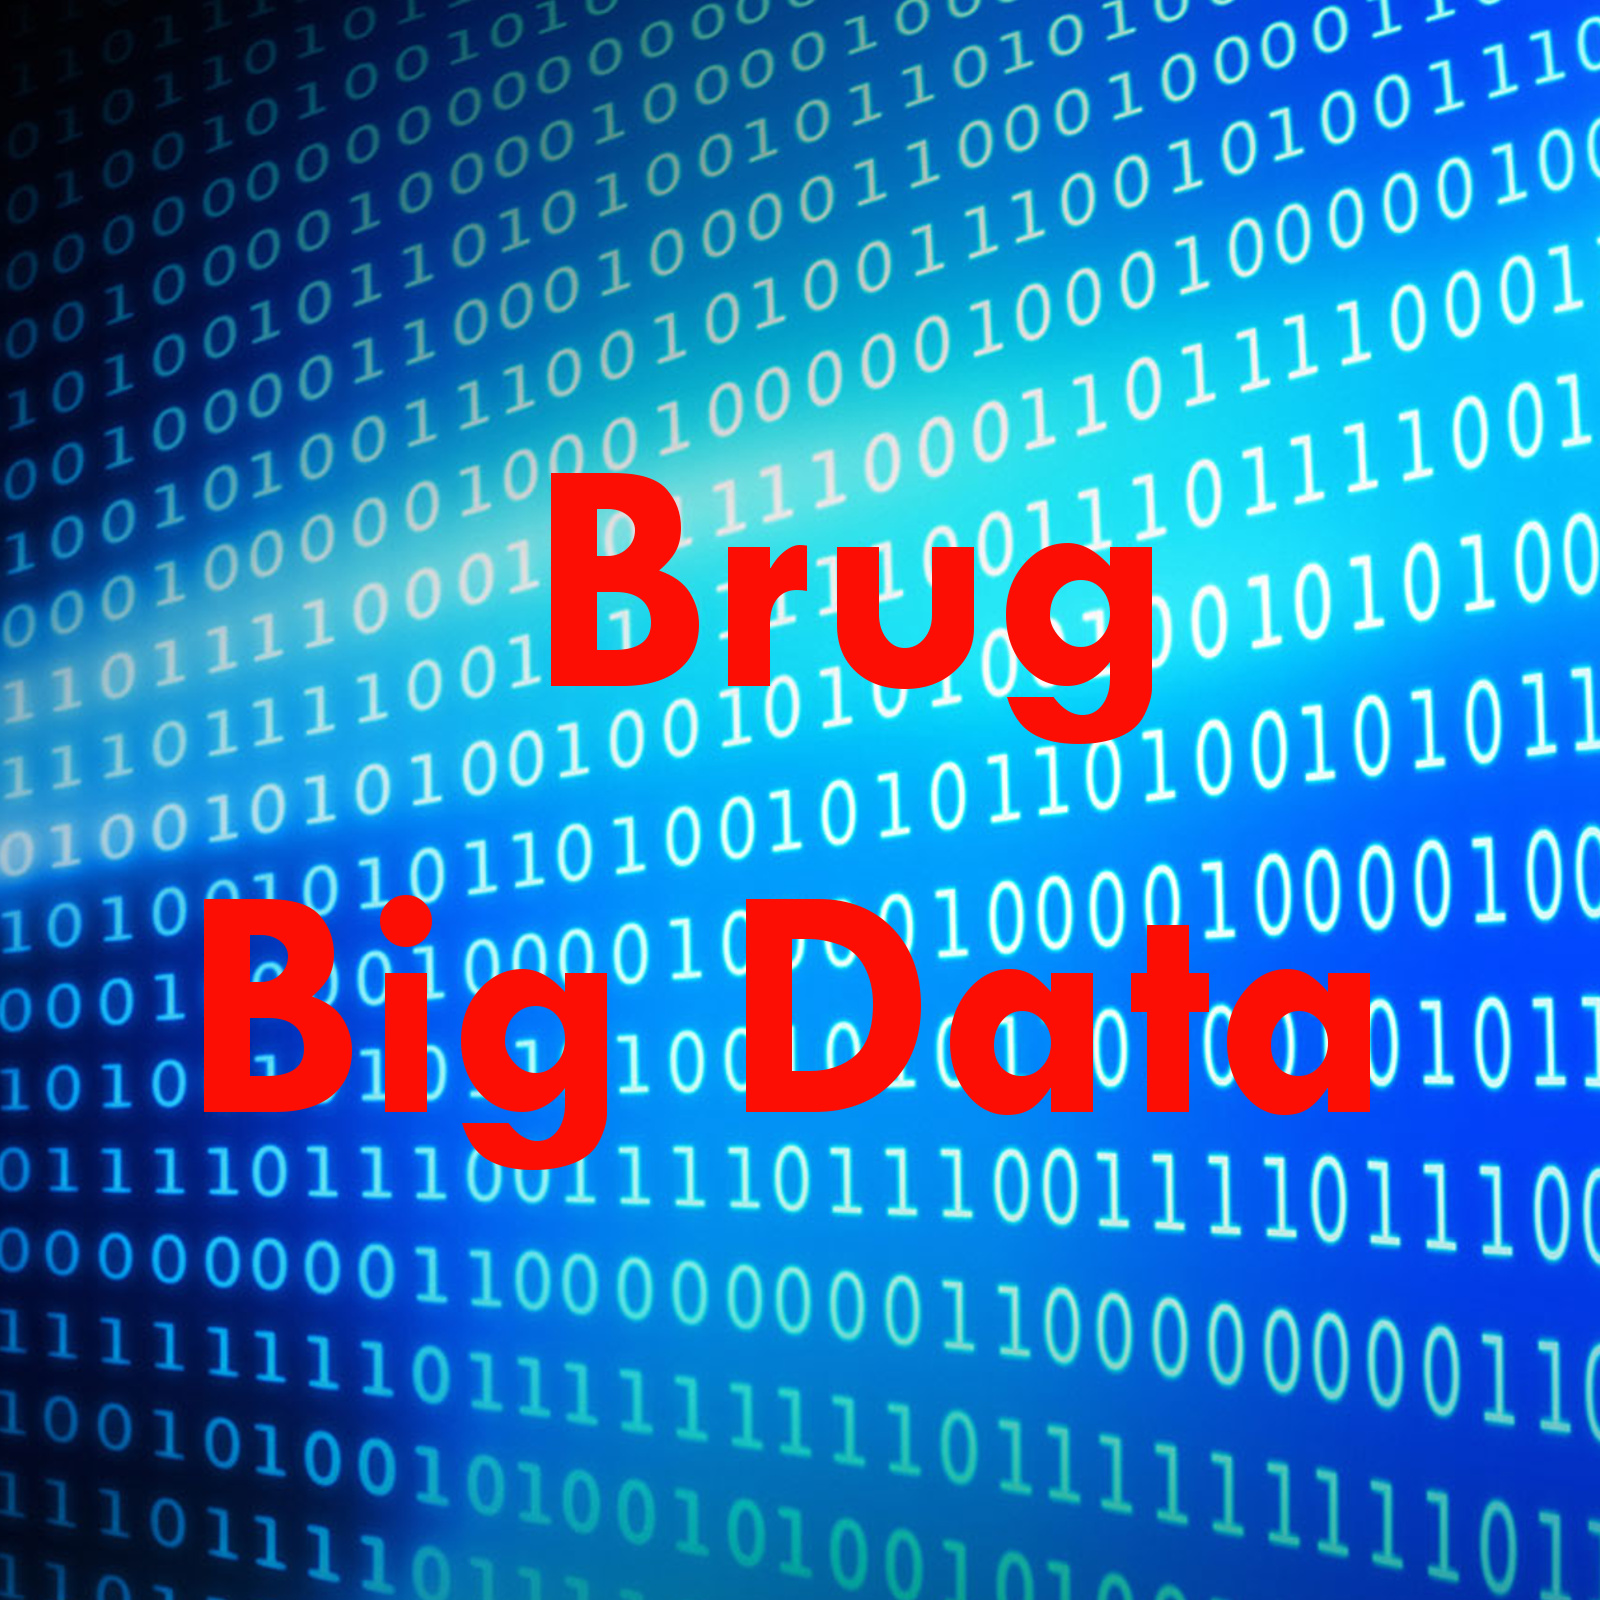 Brug Big Data Episode 1 - 8.25 min.